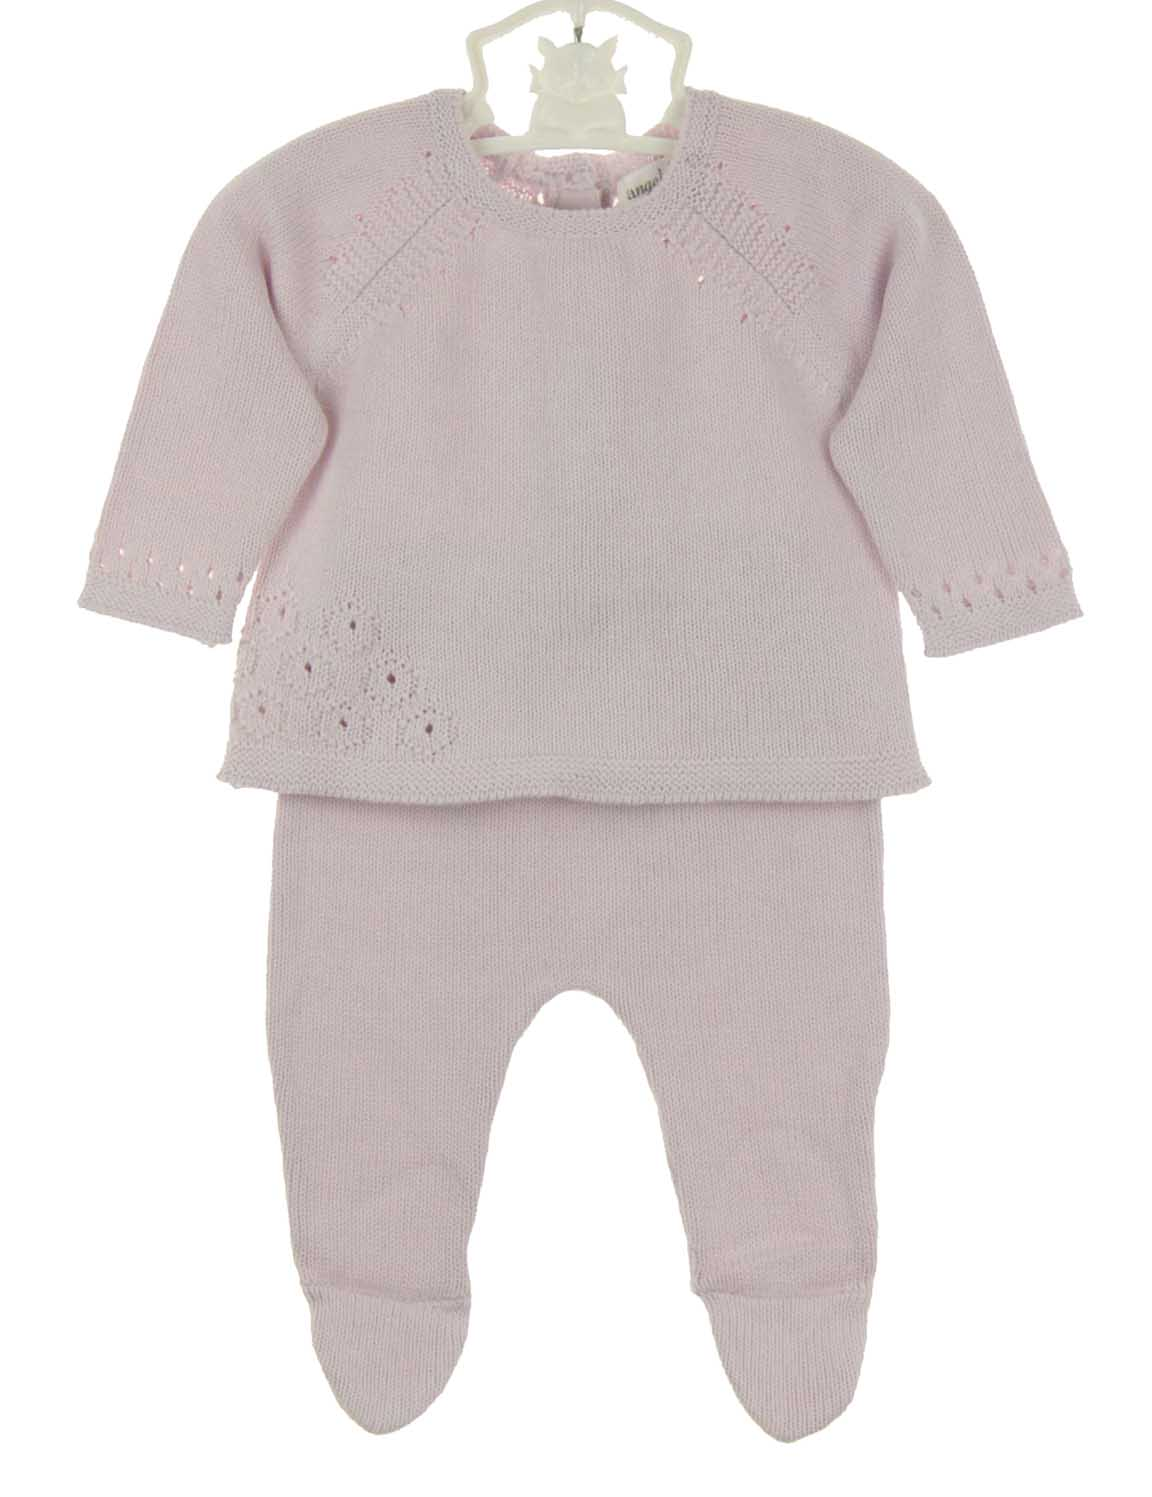 Attractive Angel Dear lavender baby sweater and leggings set,lavender newborn  UH51